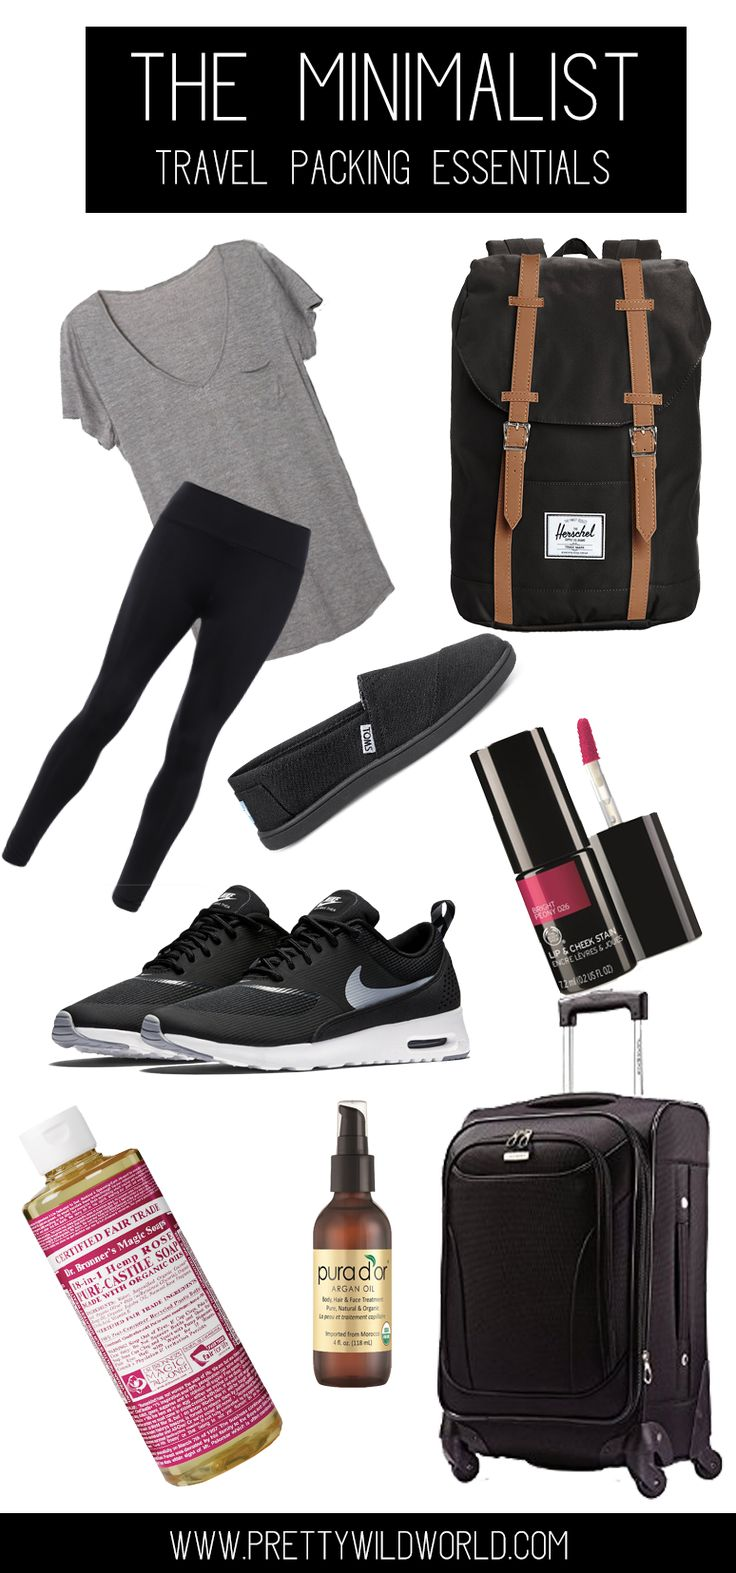 Minimalist Travel Packing Essentials | Carry on | Weekend getaway | Minimalism | Travel Essentials | Ultimate travel list